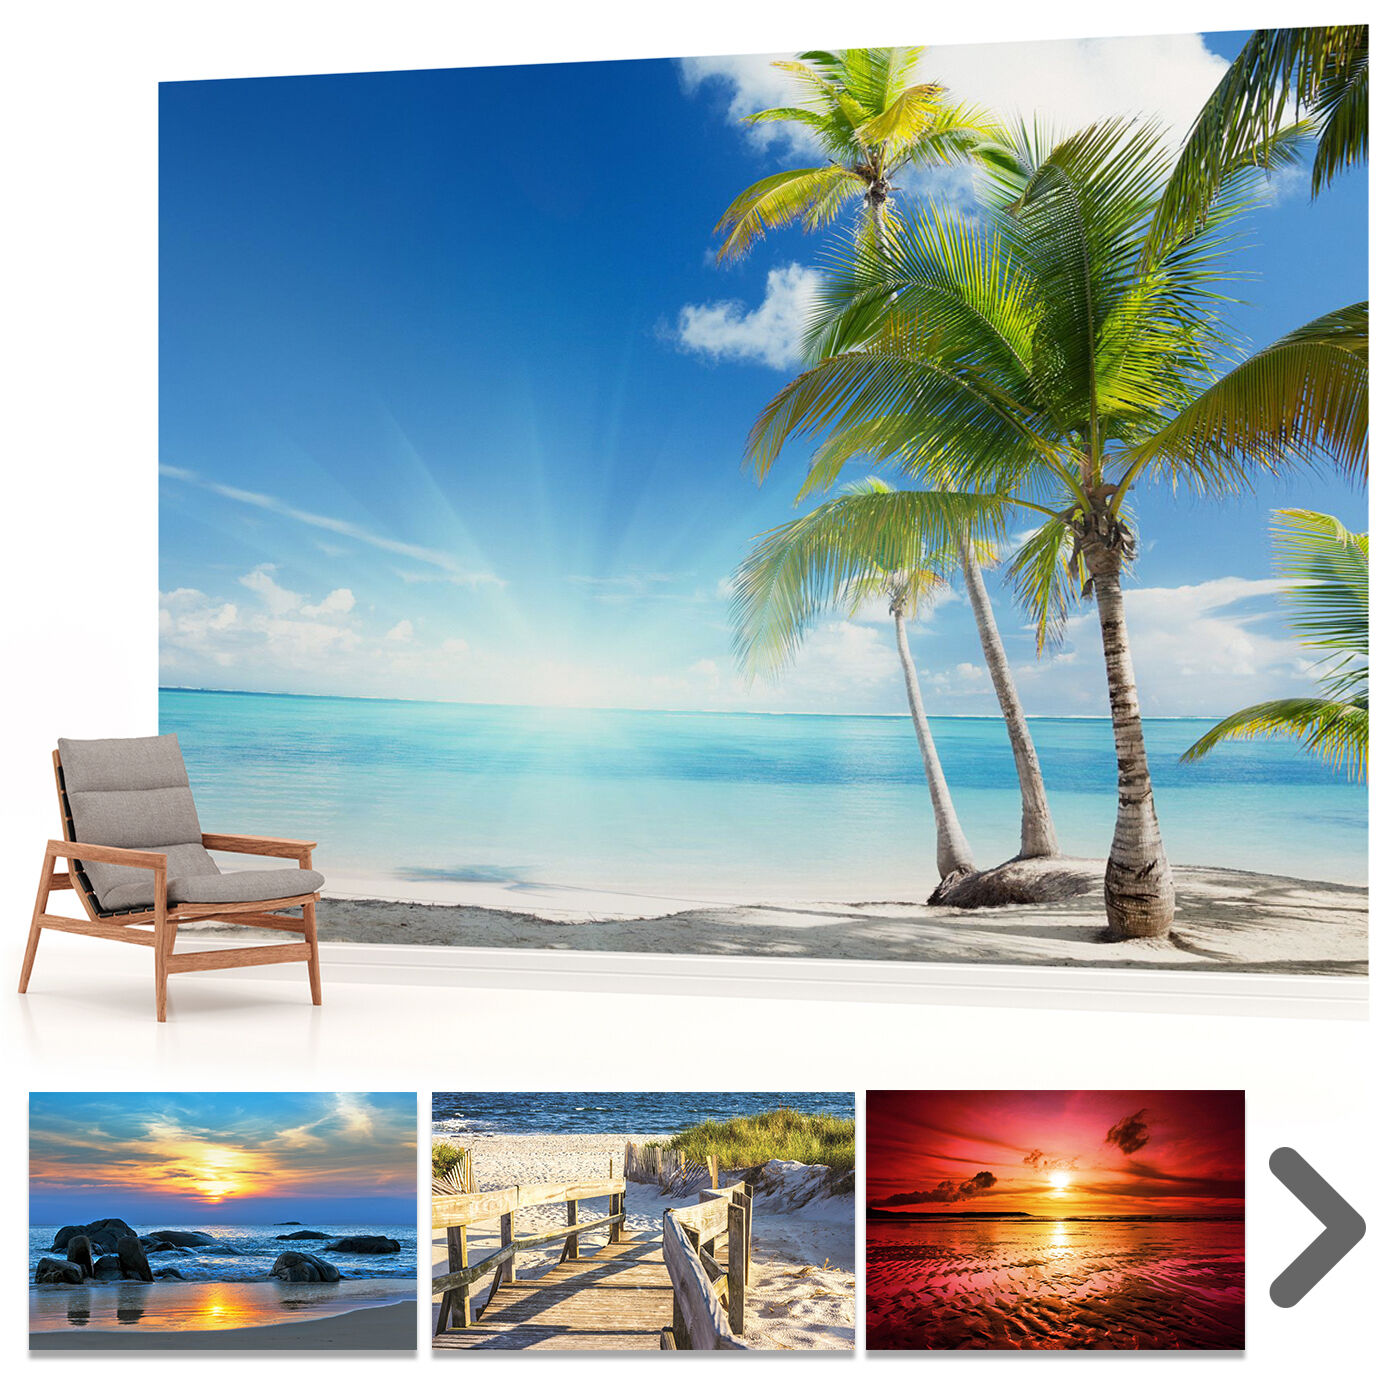 fototapete wandbild fototapeten bild tapete strand meer. Black Bedroom Furniture Sets. Home Design Ideas